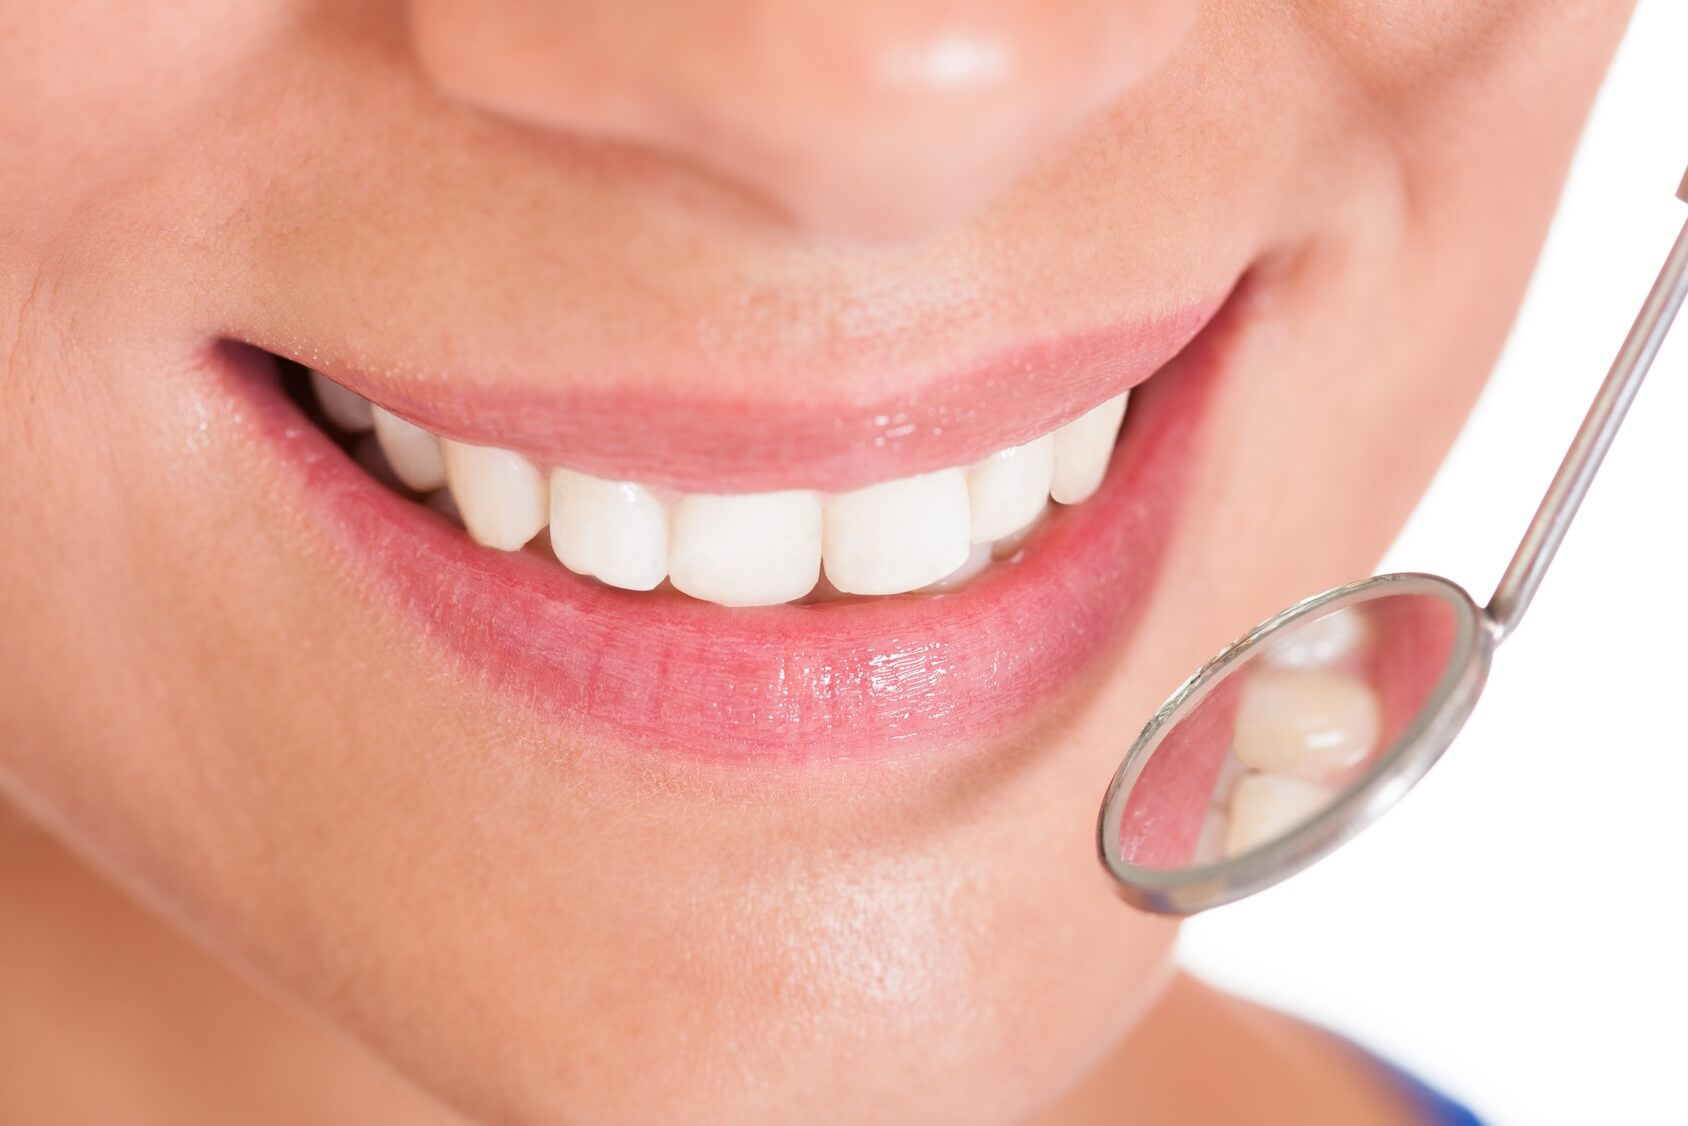 Smiling woman with perfect white teeth and a small dentists mirror reflecting her teeth being held alongside